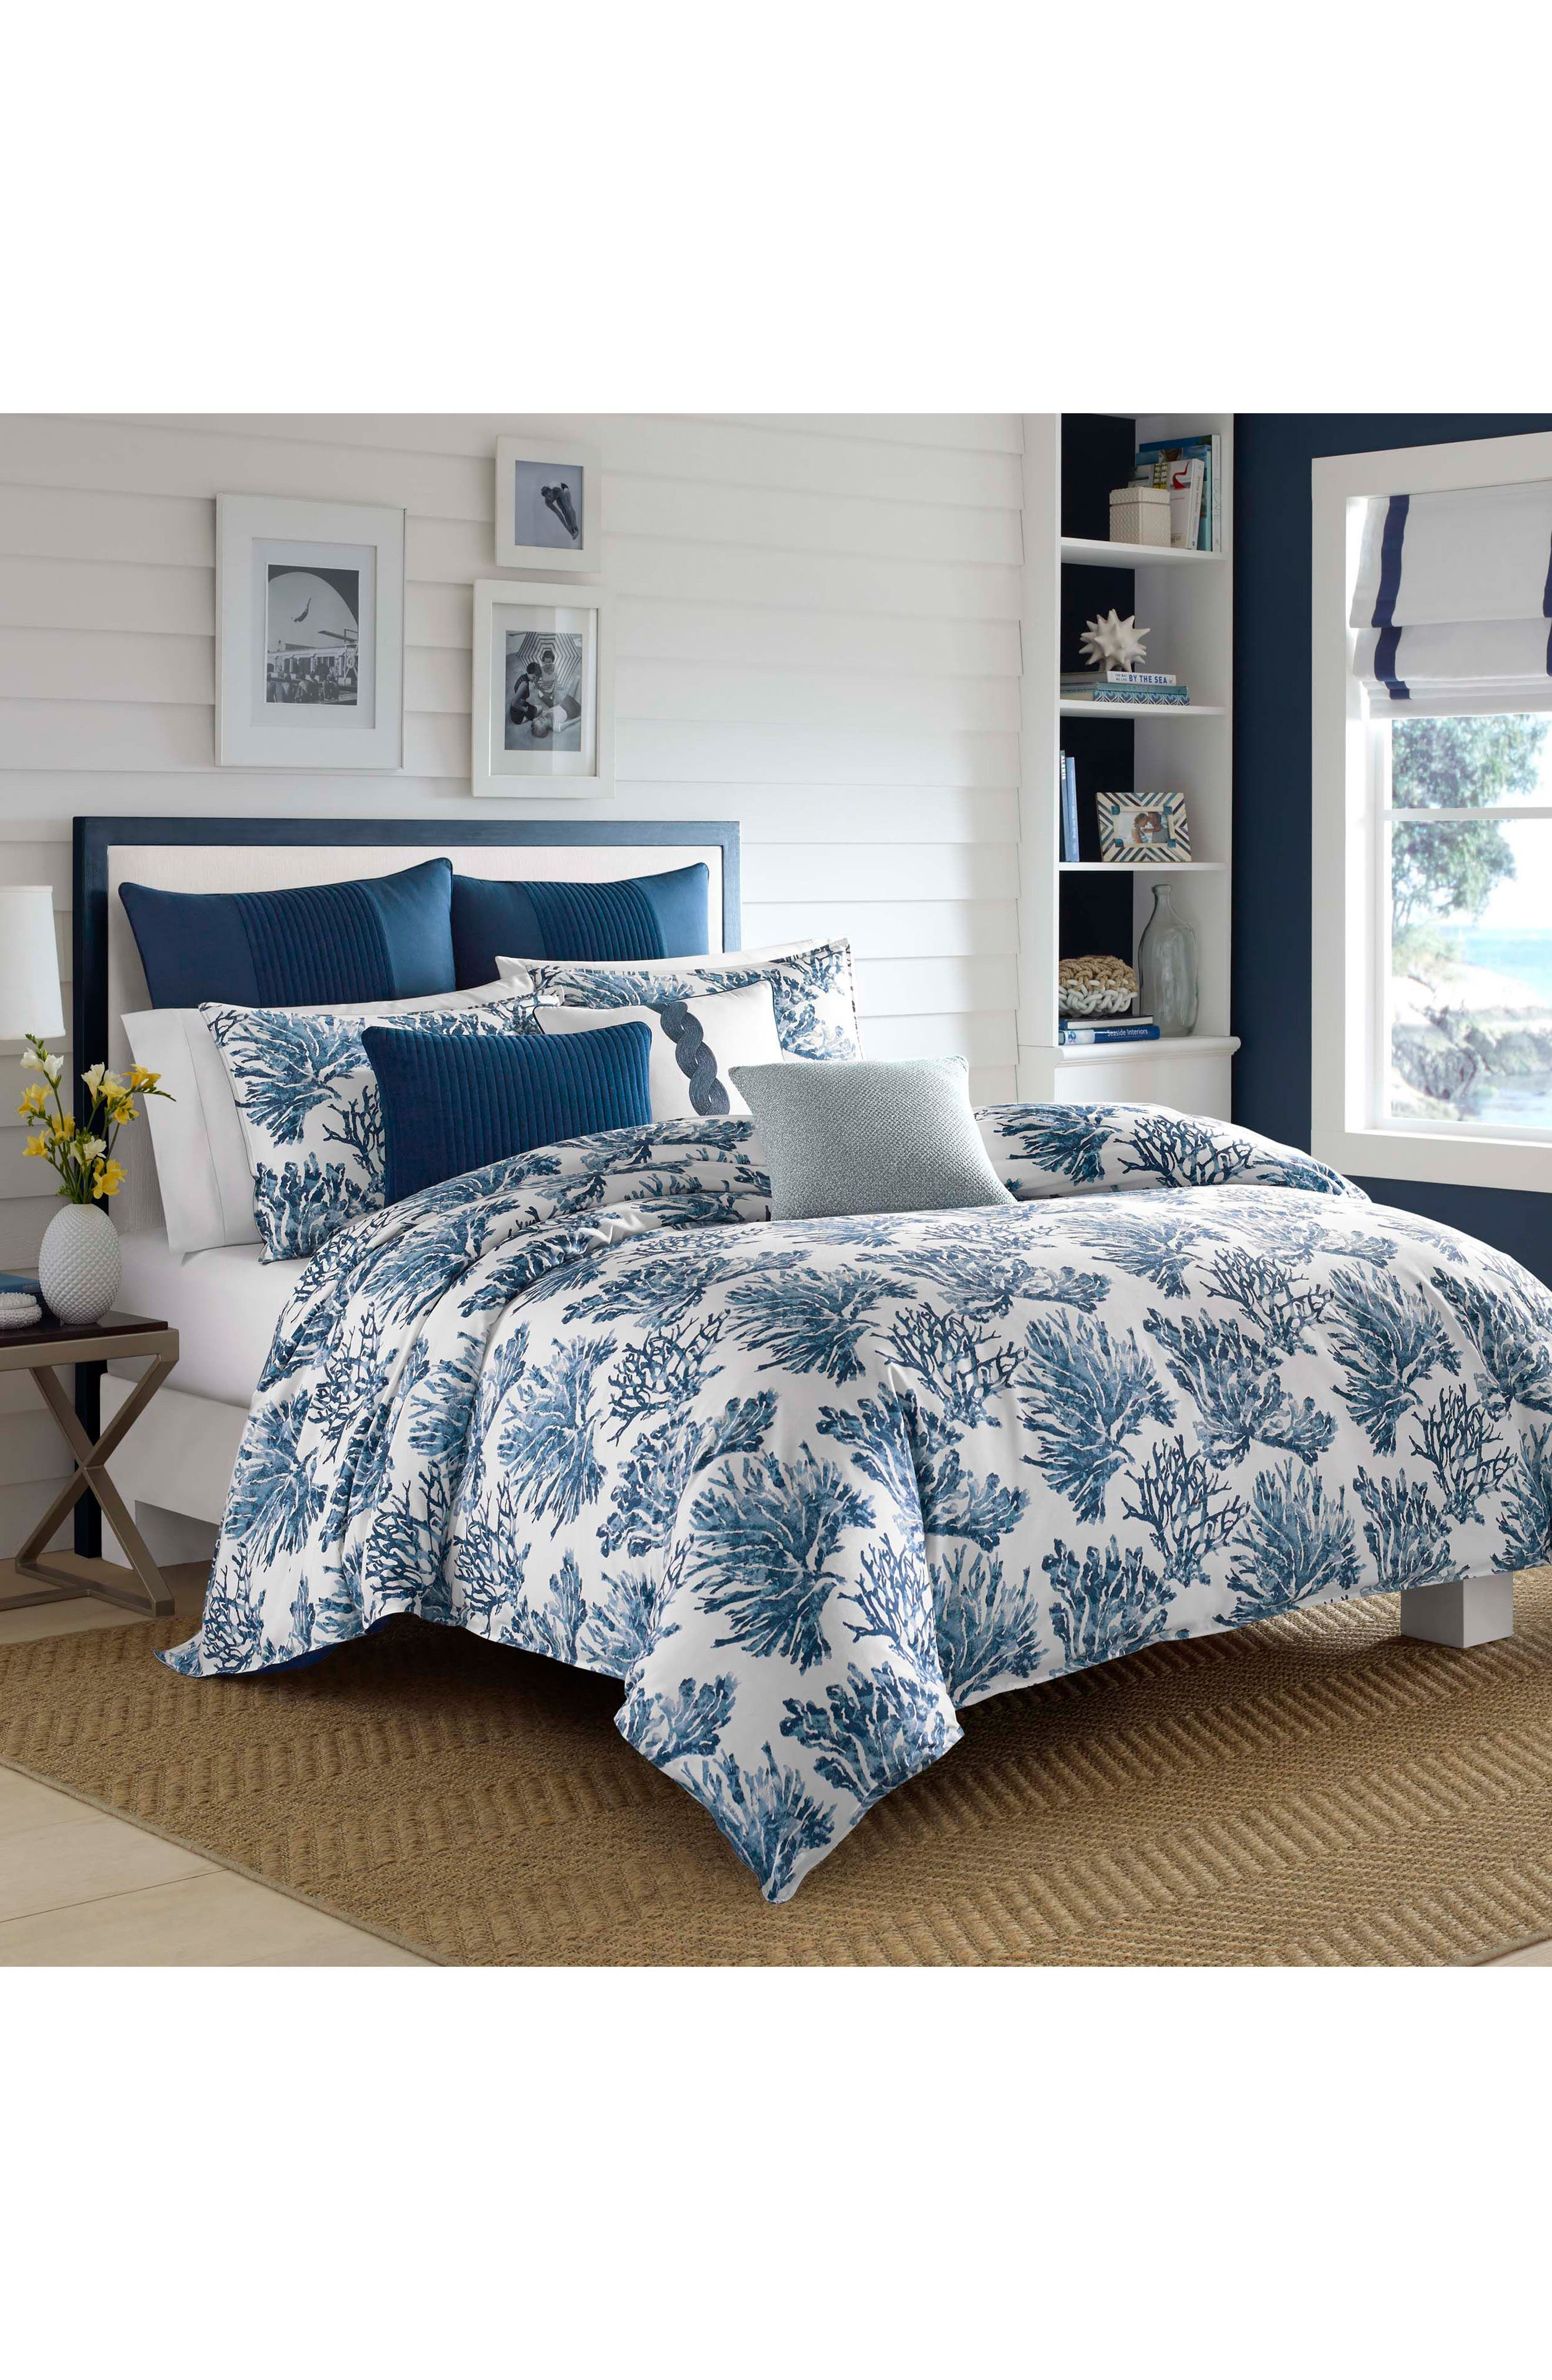 Teal Duvet Cover Image Of Beach House Brights Duvet Cover